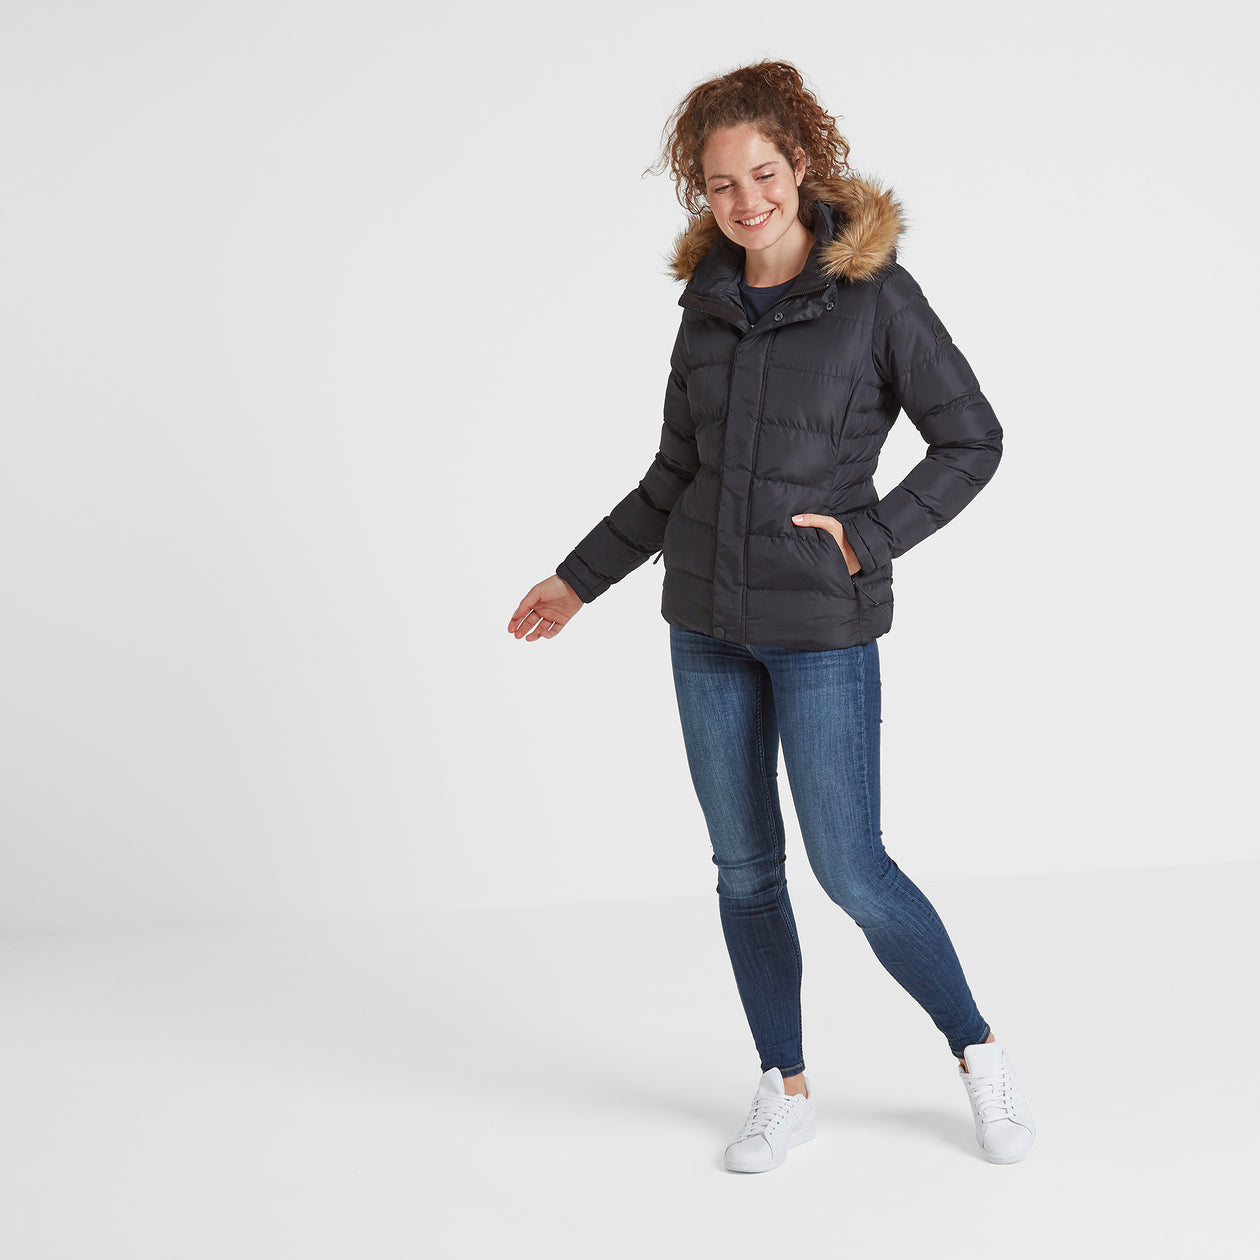 Fernsby Womens Insulated Jacket - Black image 4